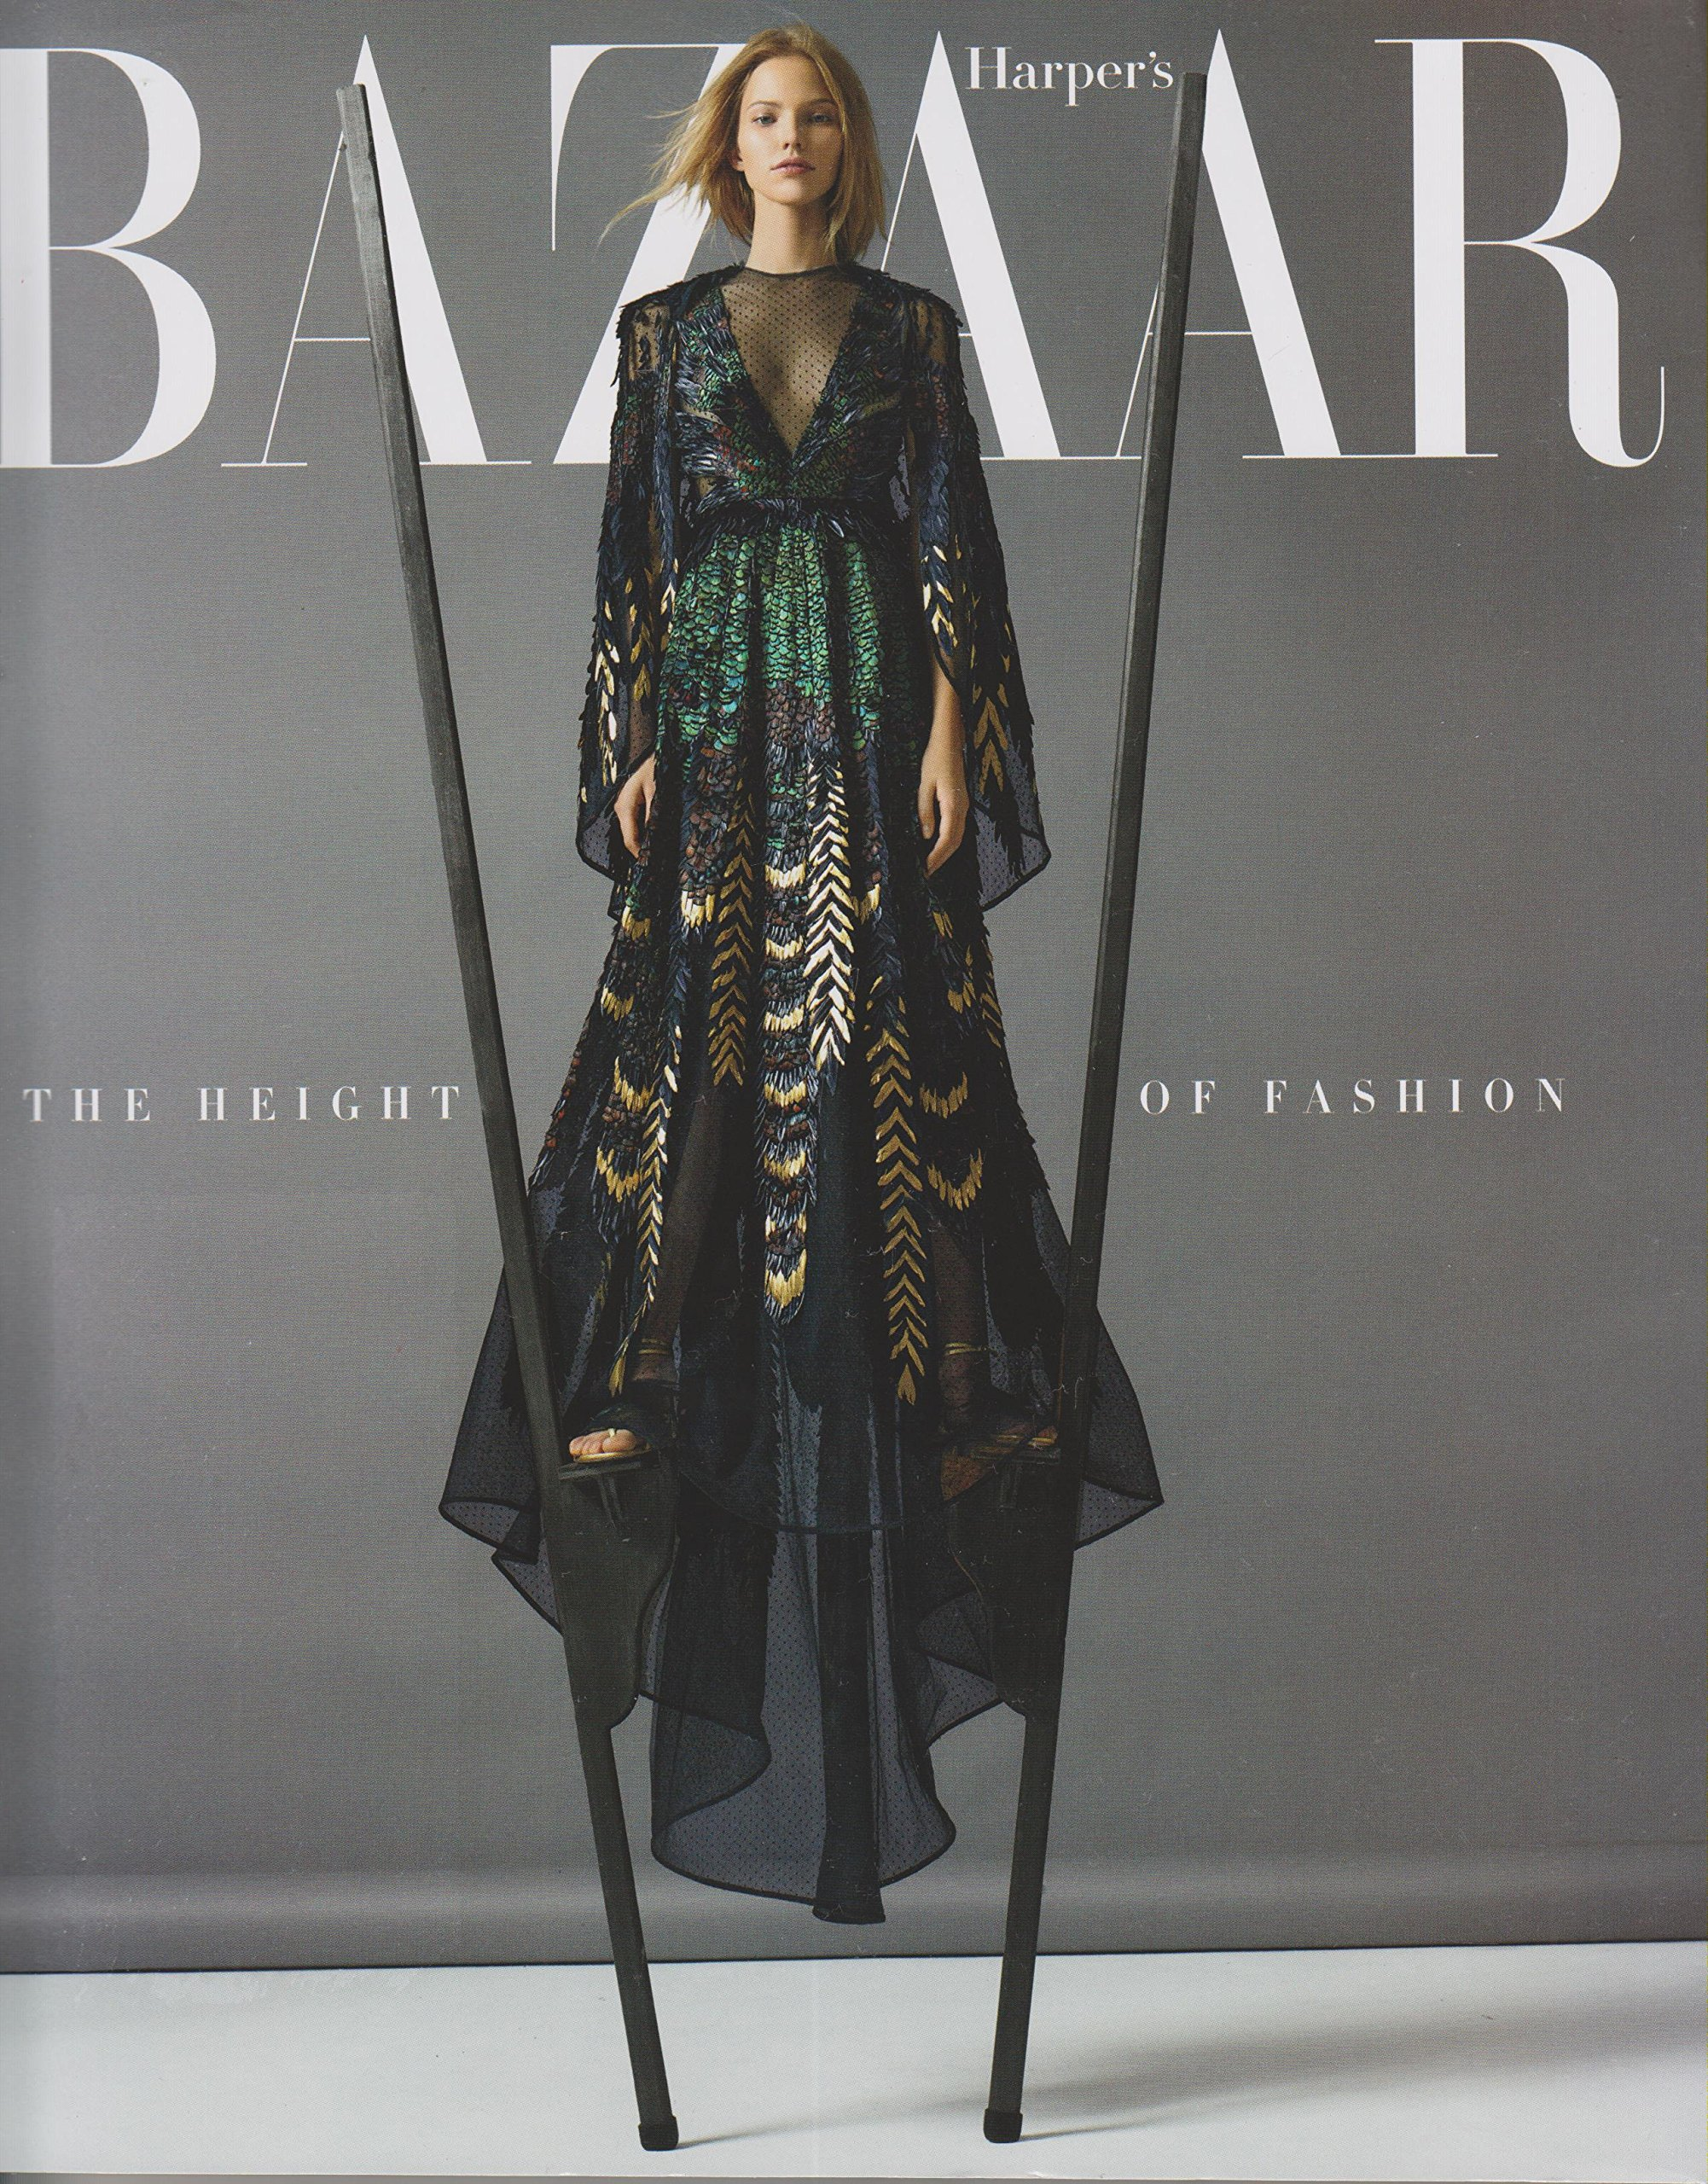 Download Harper's Bazaar November 2015 The Height of Fashion PDF